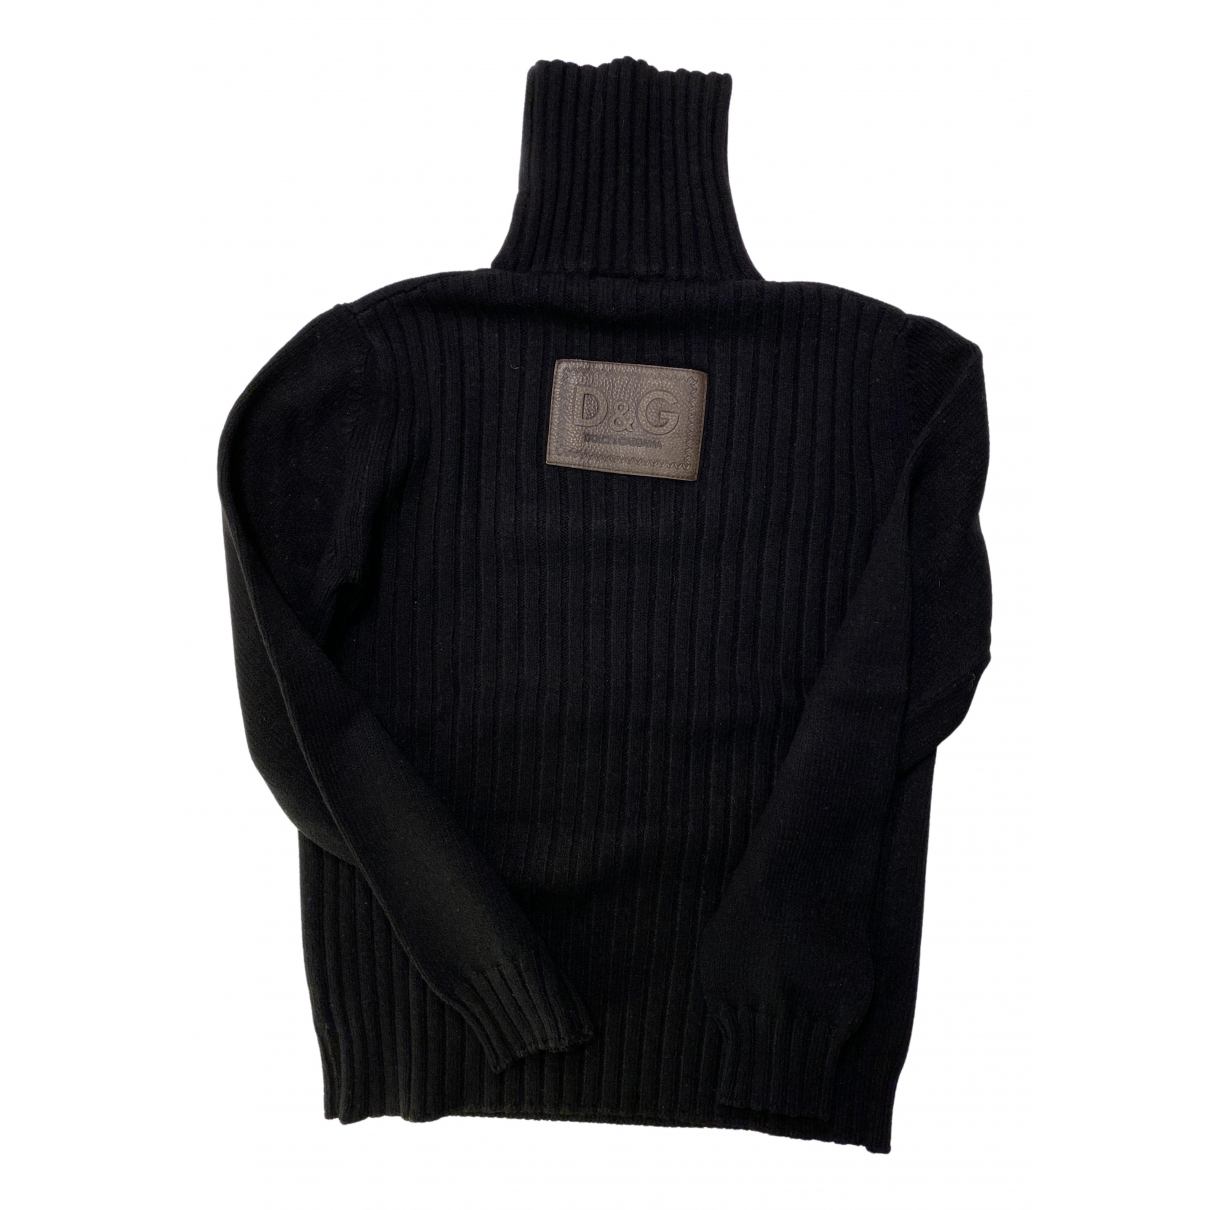 D&g \N Black Knitwear & Sweatshirts for Men M International